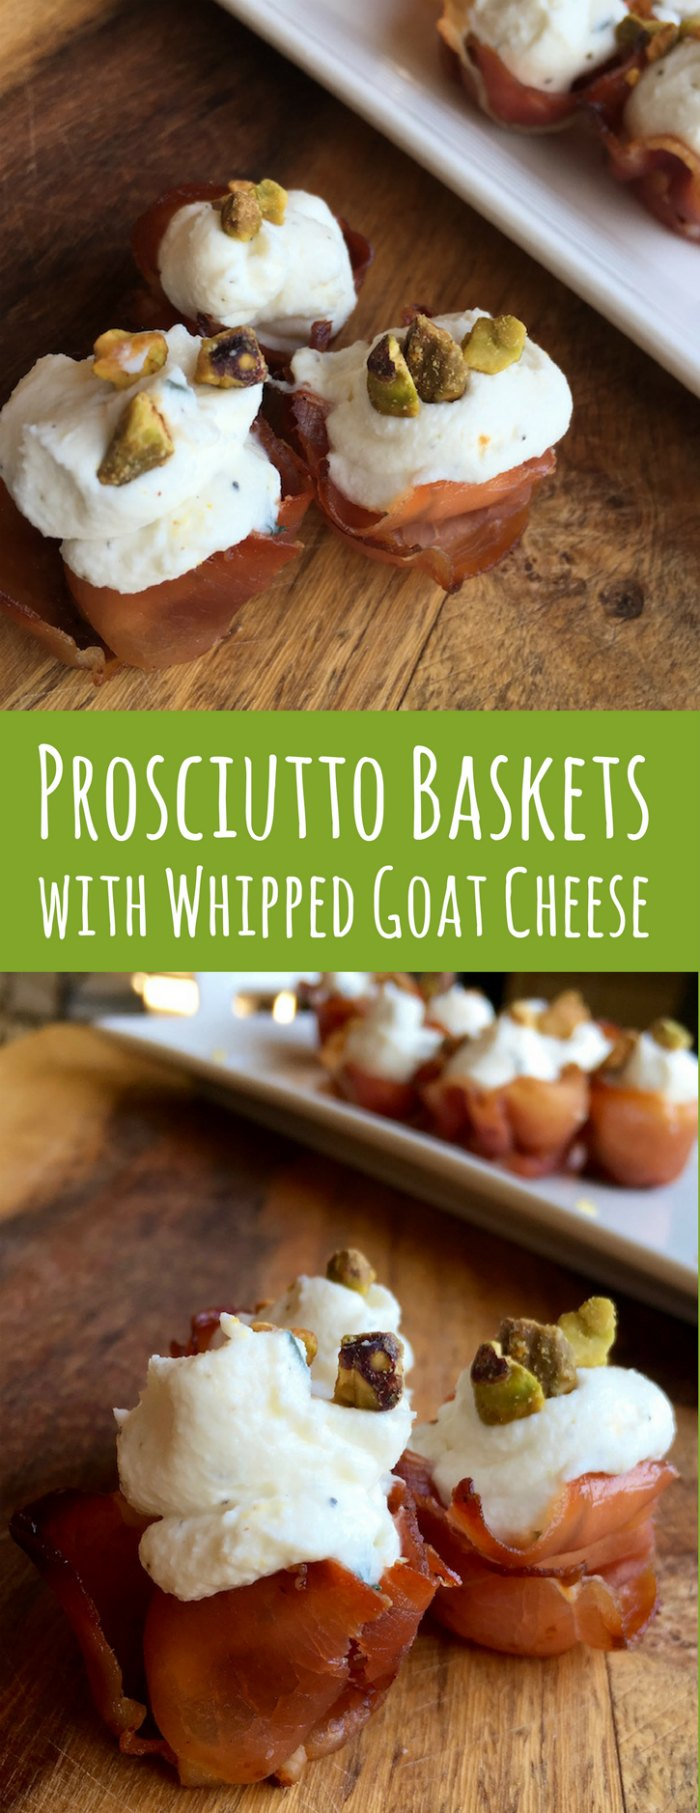 Prosciutto Appetizers with Whipped Goat Cheese Filling | Mommy Evolution